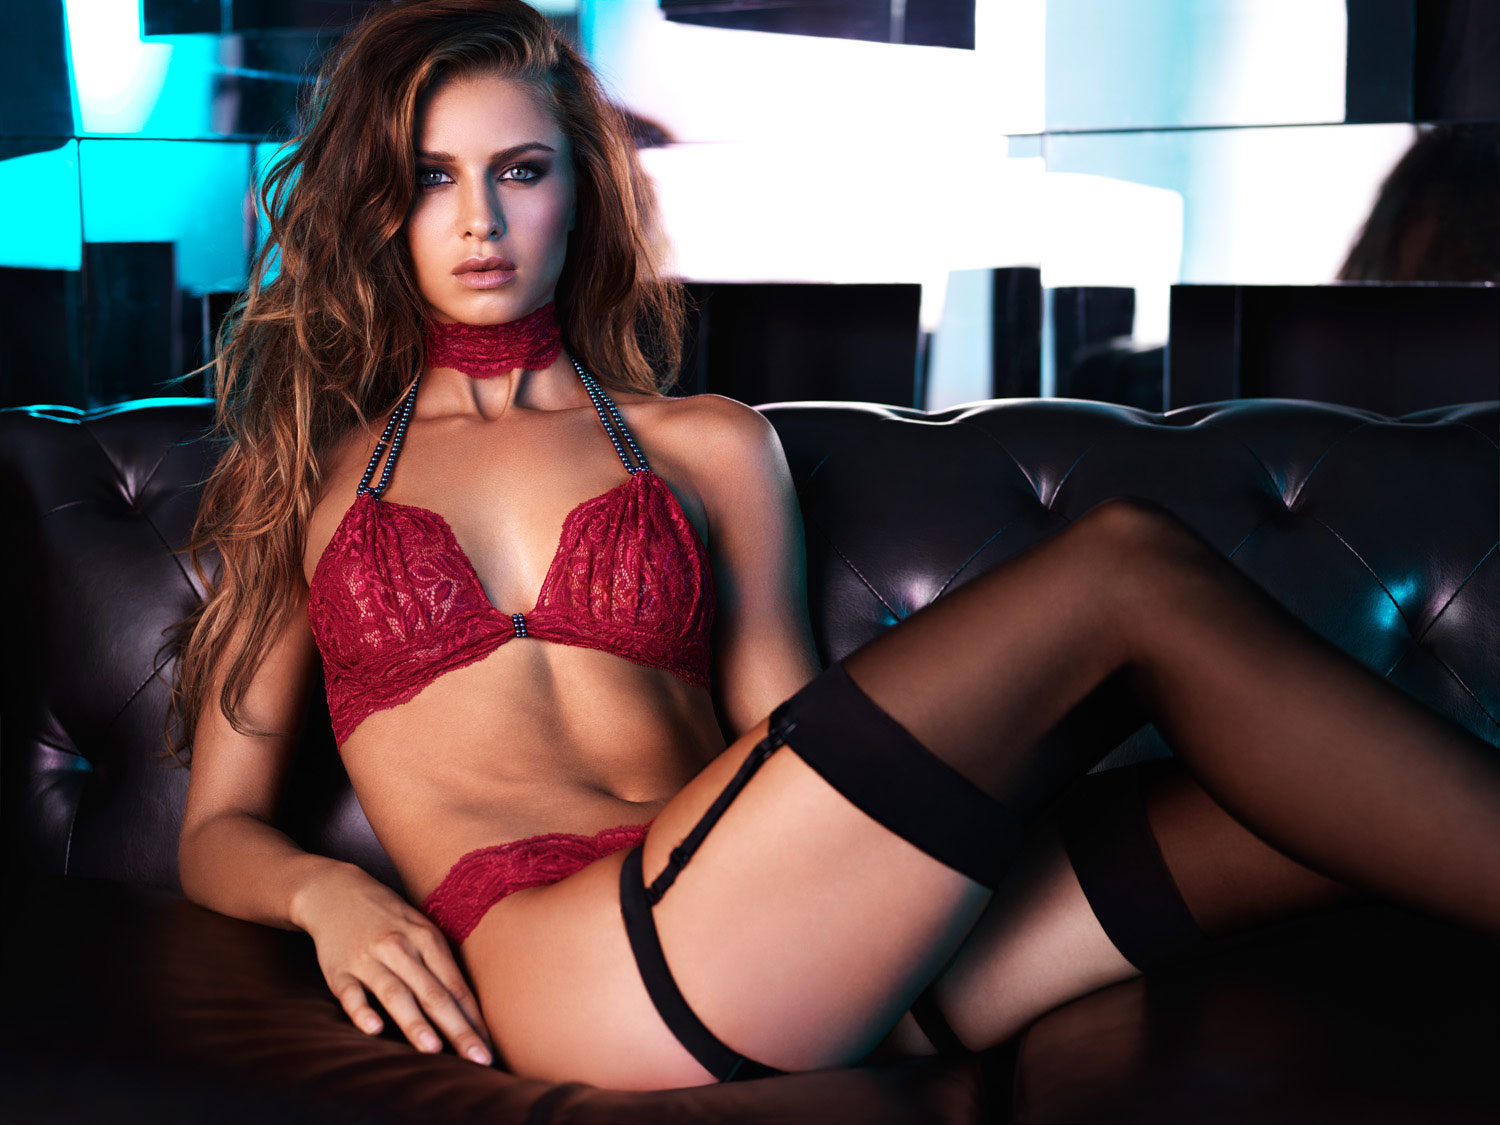 Dessous.at - Bracli sexy Lingerie Kollektion Brigade ...